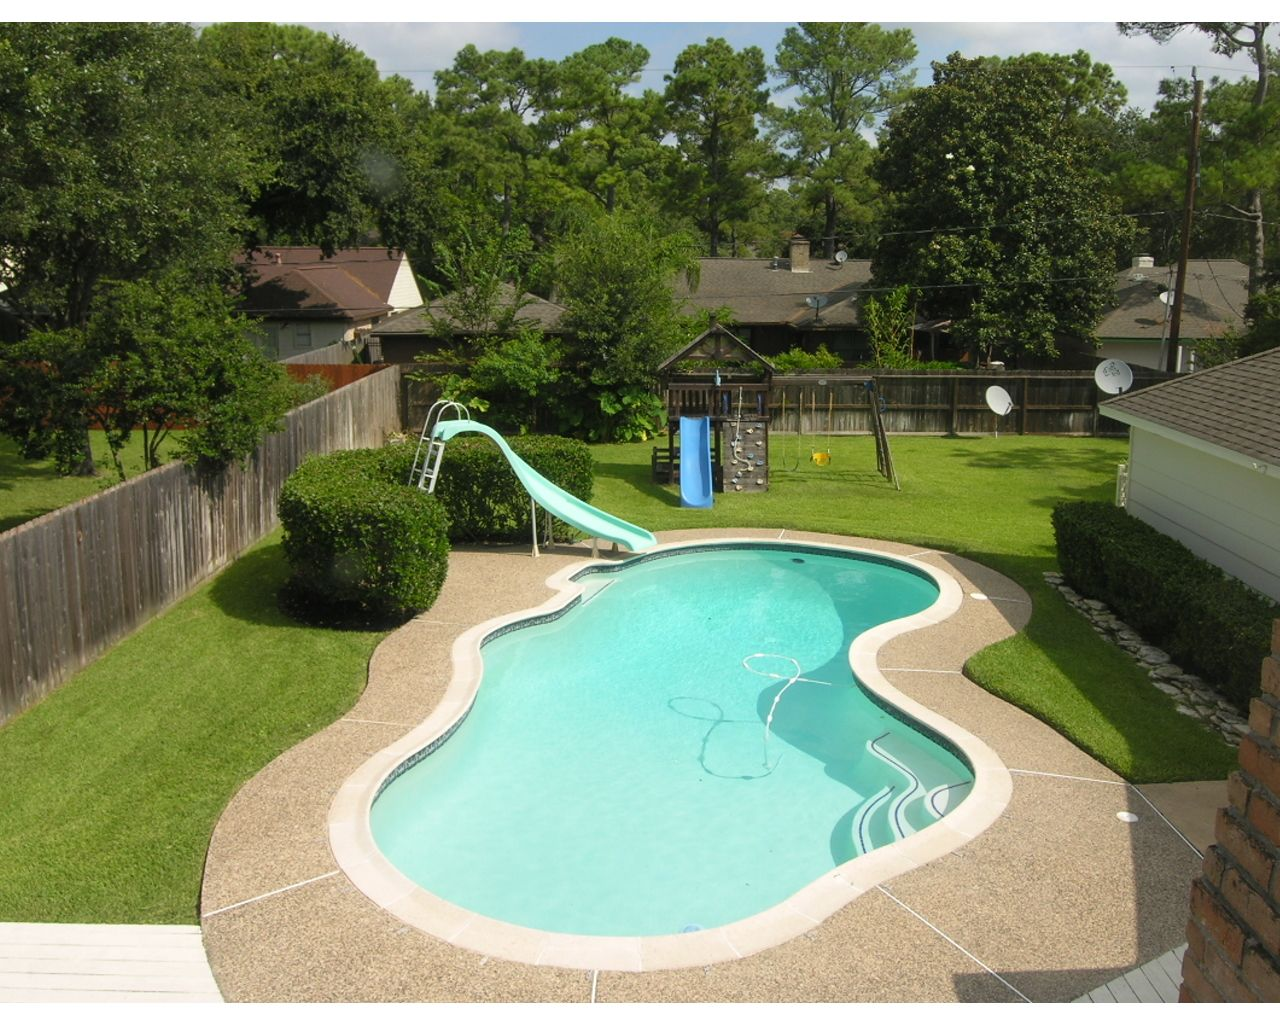 Backyard pools great view of large backyard pool but for Small backyard pool ideas